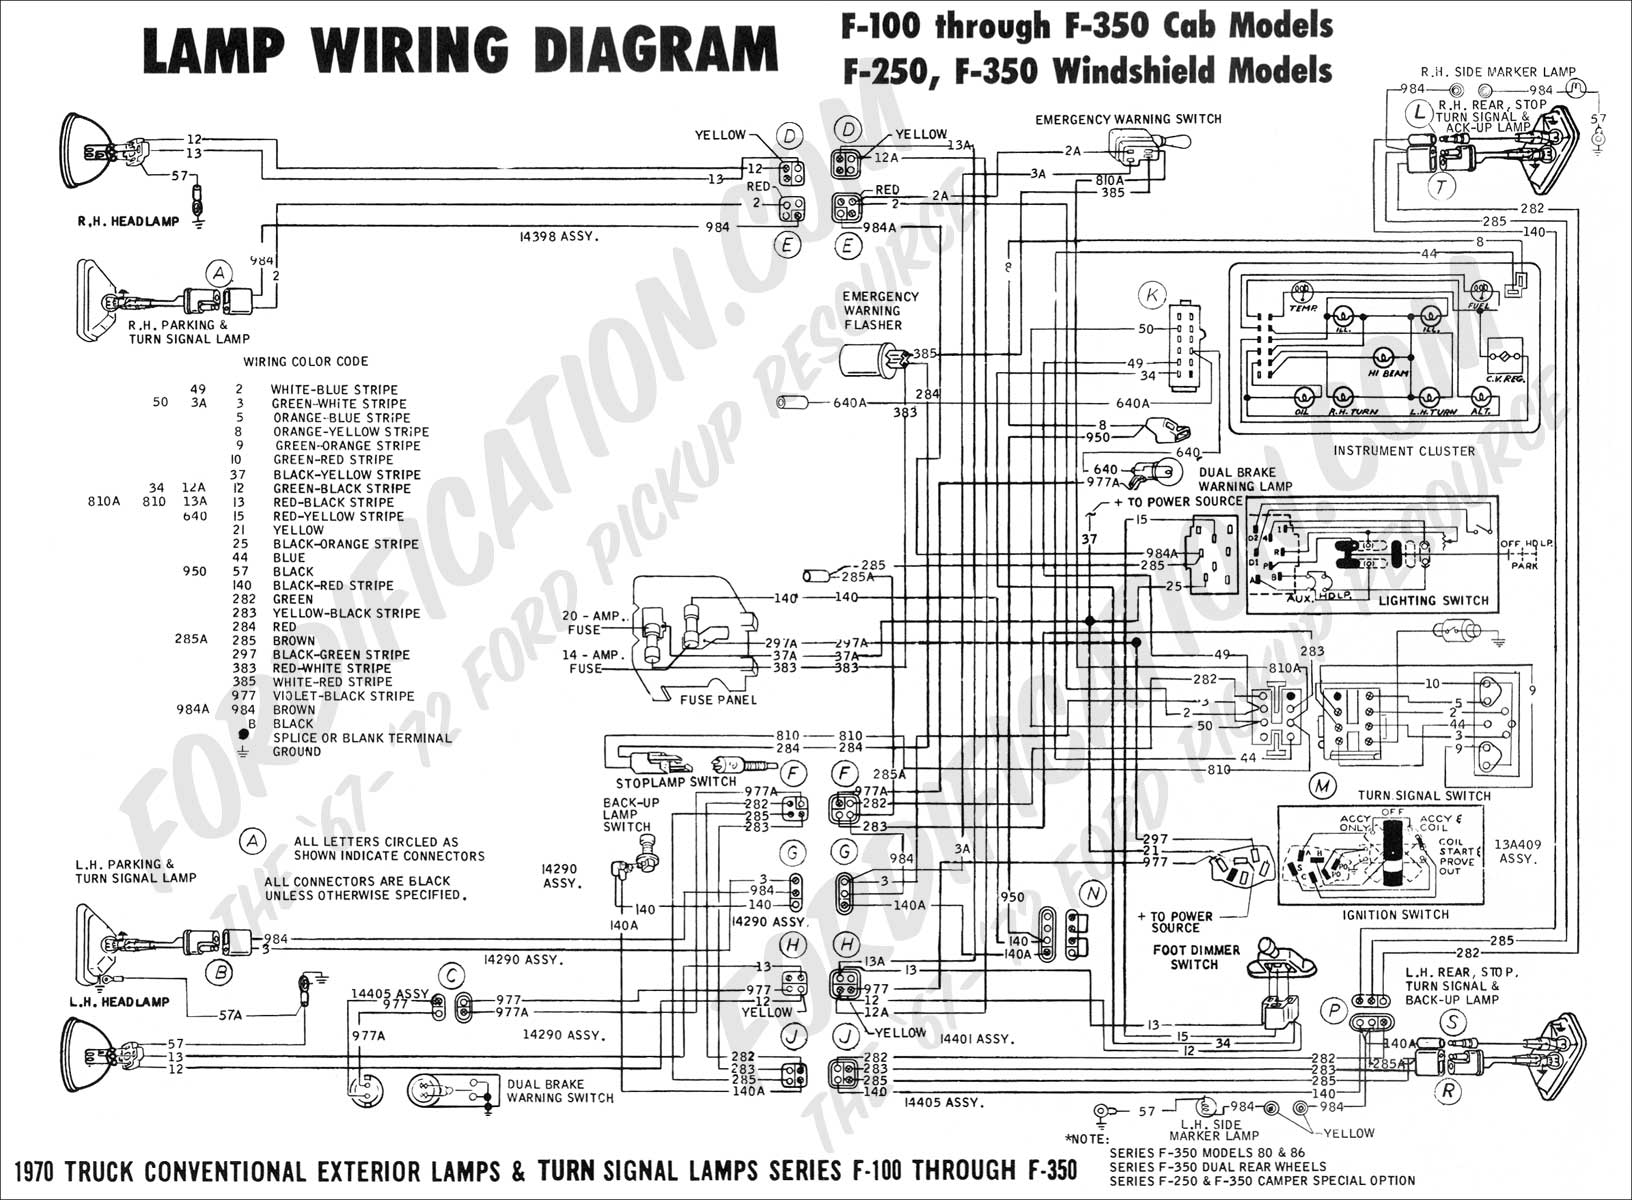 1999 ford f 150 trailer wiring diagram wiring diagrams instruct 2004 F150 Stereo Wiring ford f 350 wiring harness wiring diagram data schema ford f 250 radio wiring diagram 1999 ford f 150 trailer wiring diagram